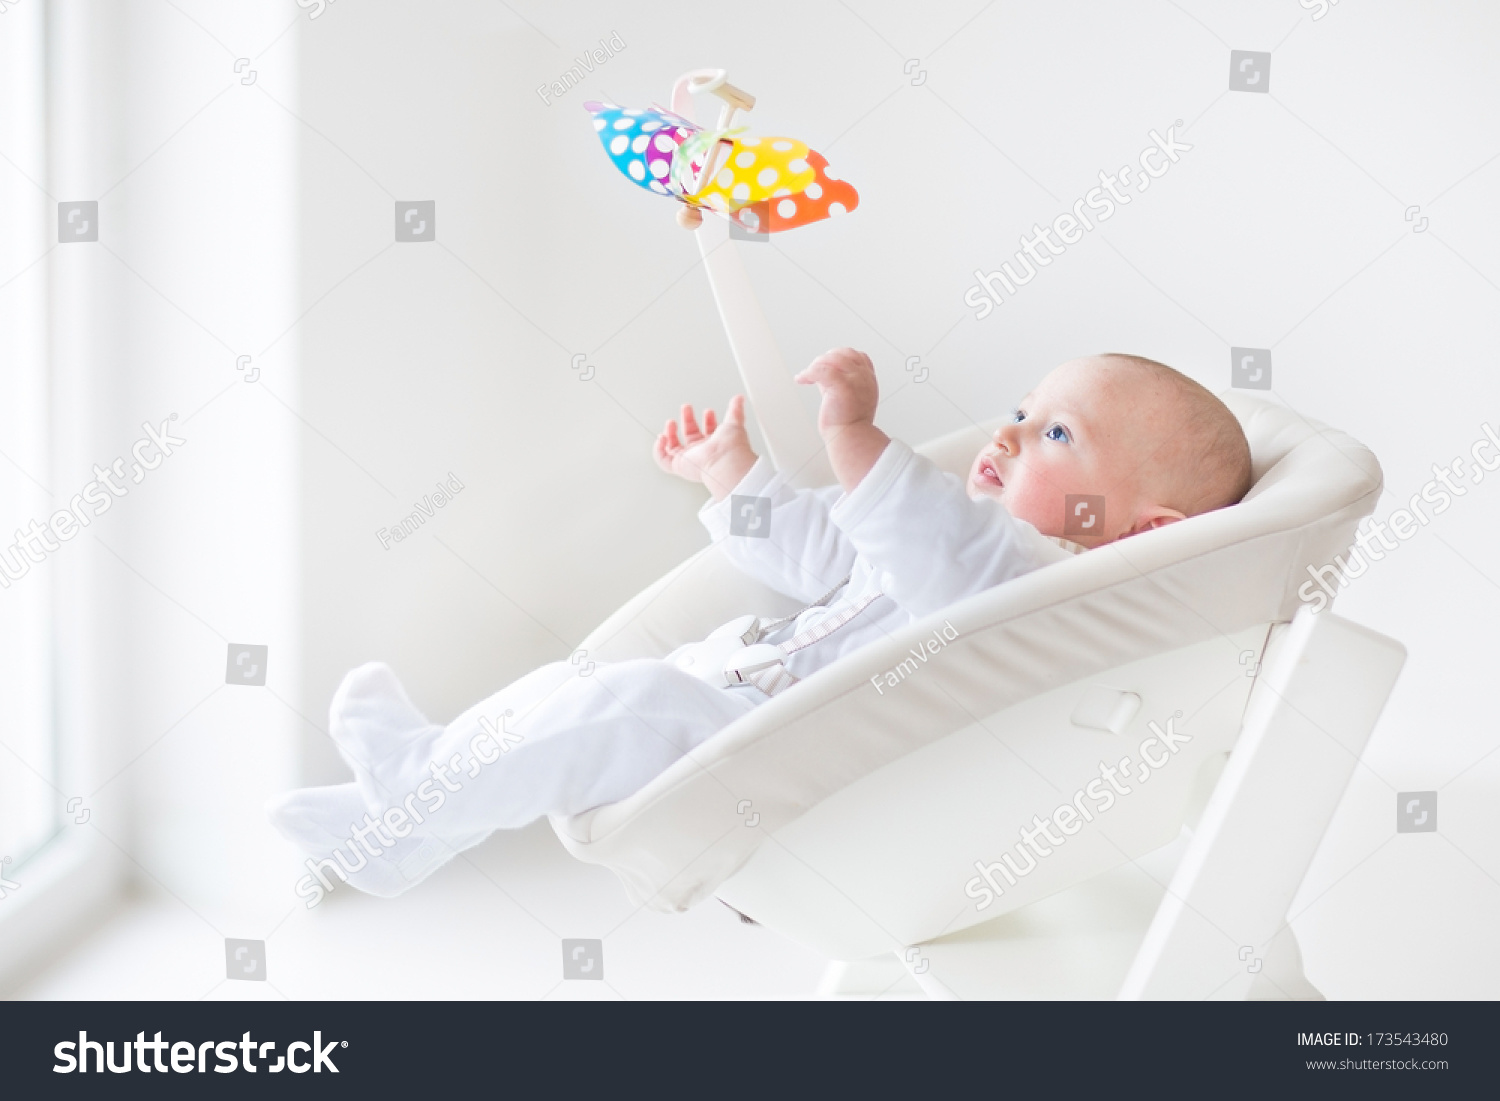 baby sitting chair india best for reading nook cute newborn boy watching a colorful mobile toy